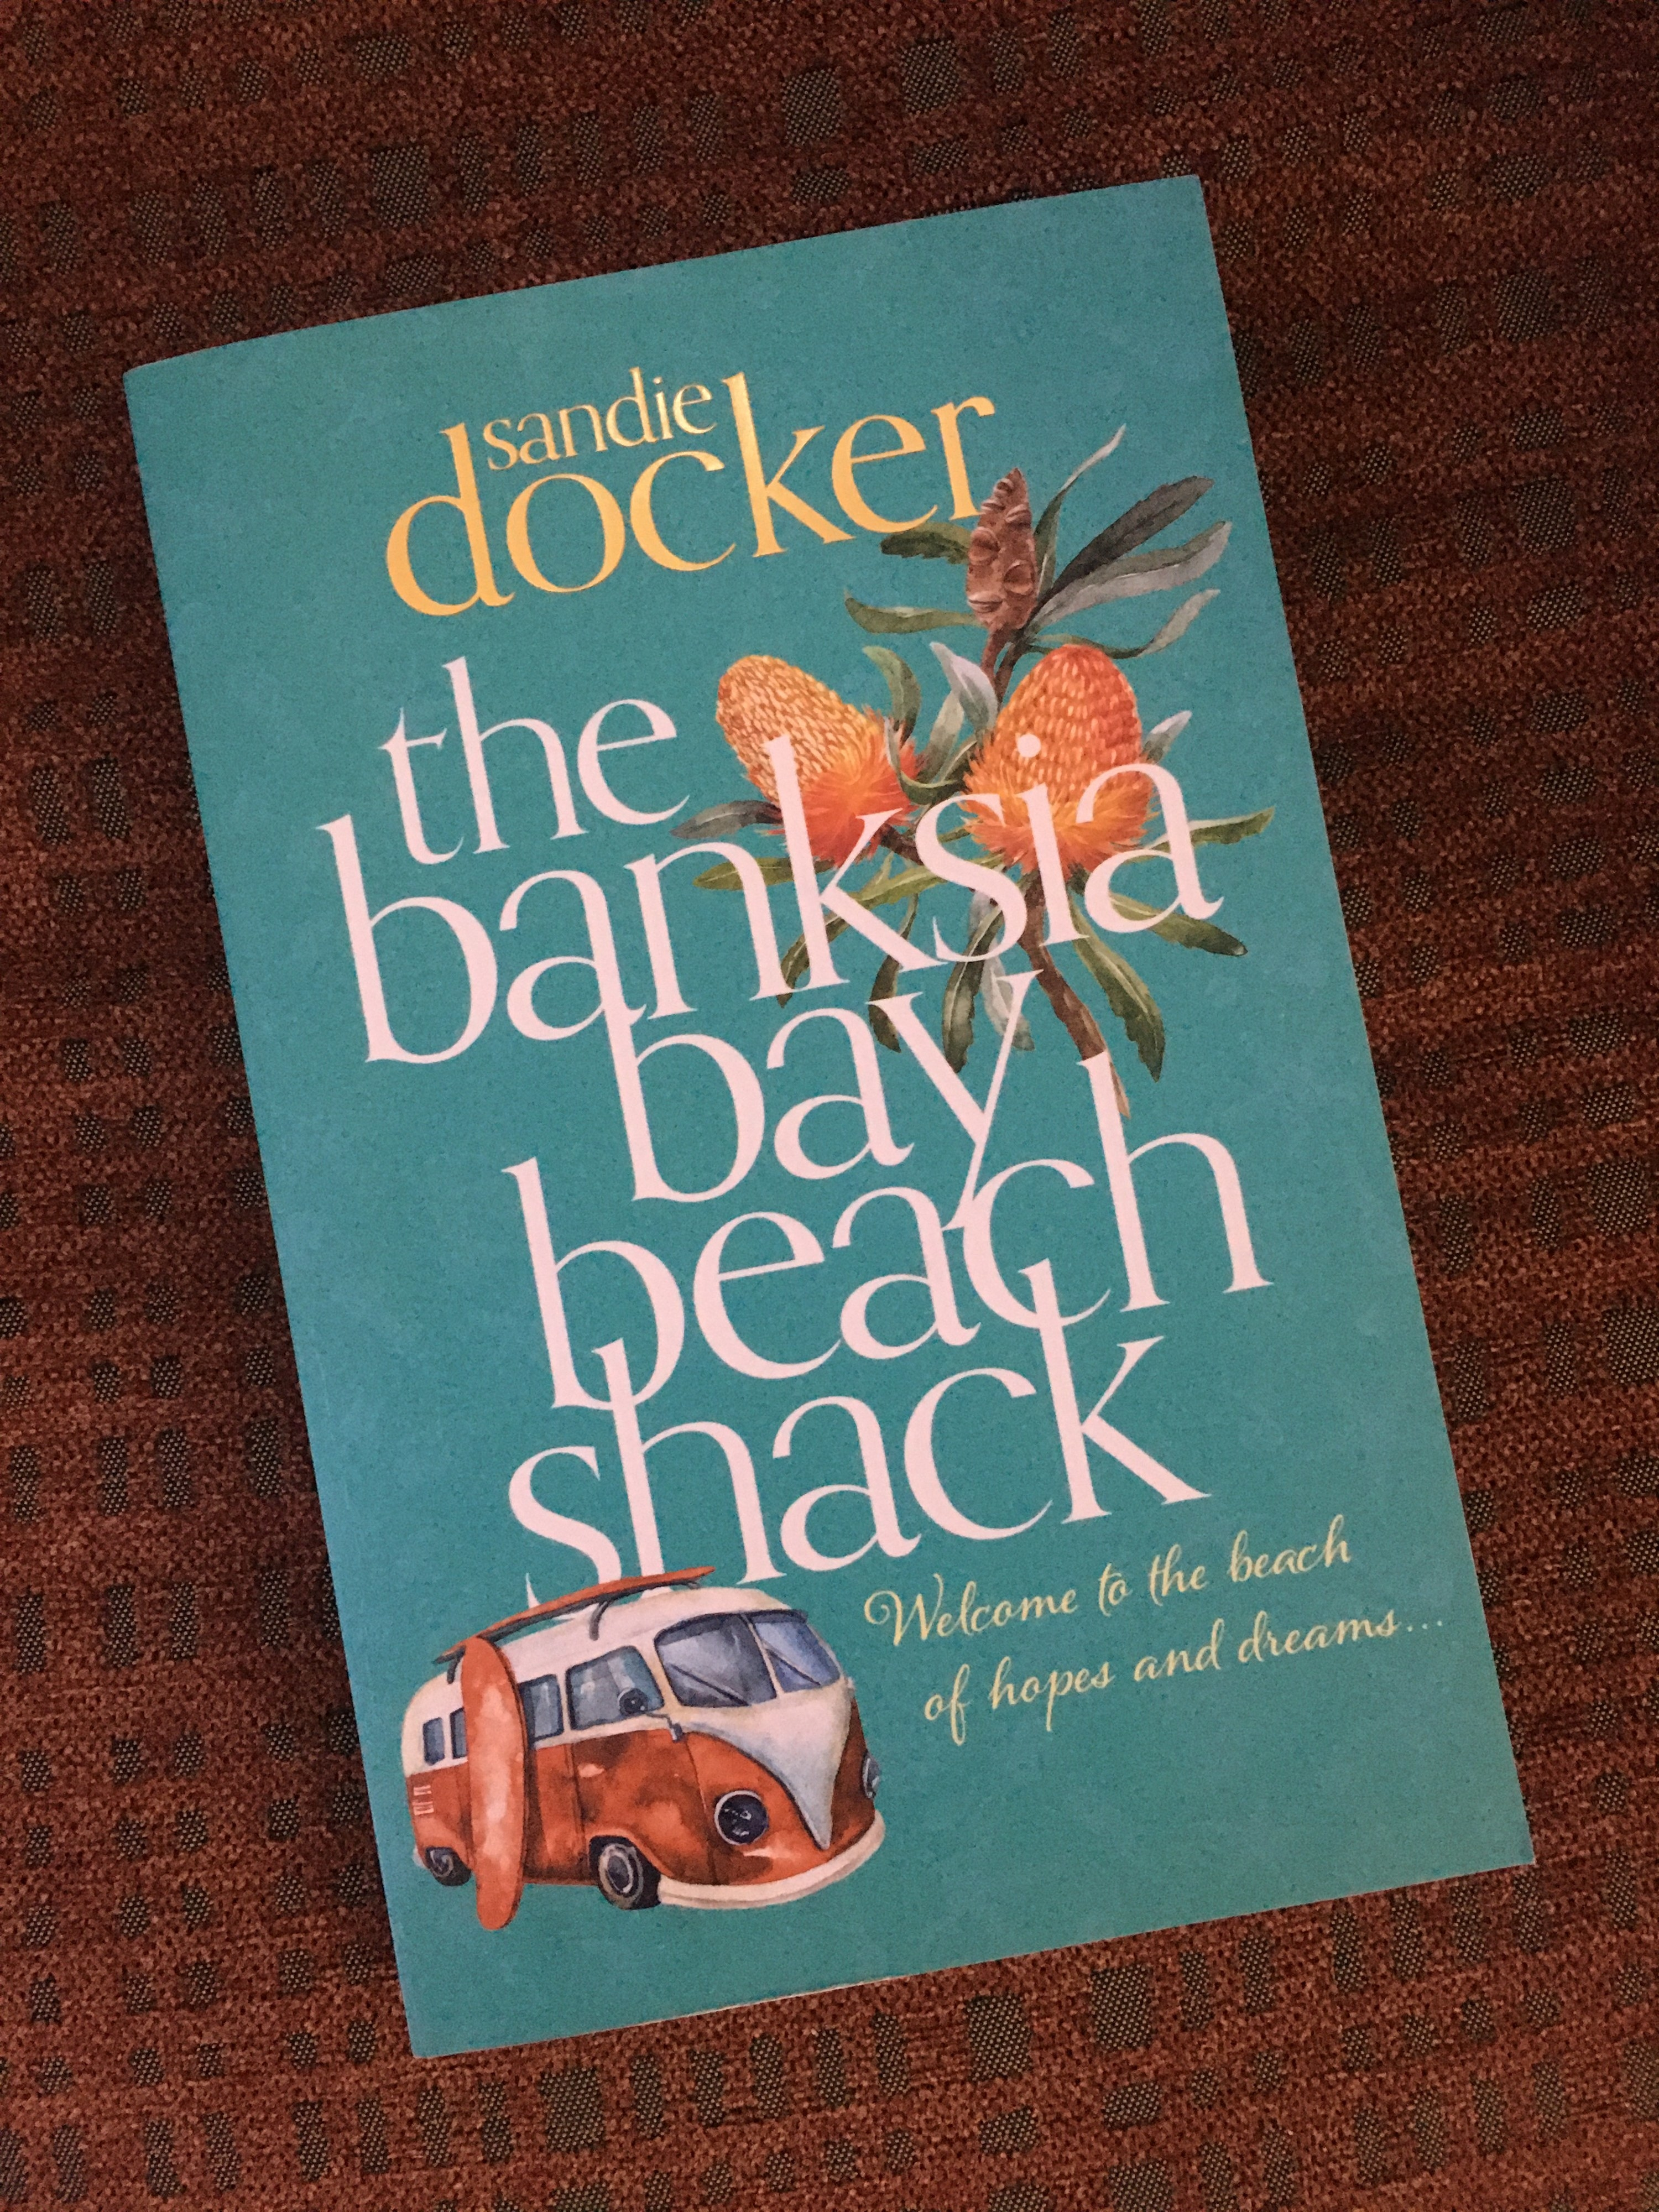 A book with a light cover, a picture of a banksia and old-school van